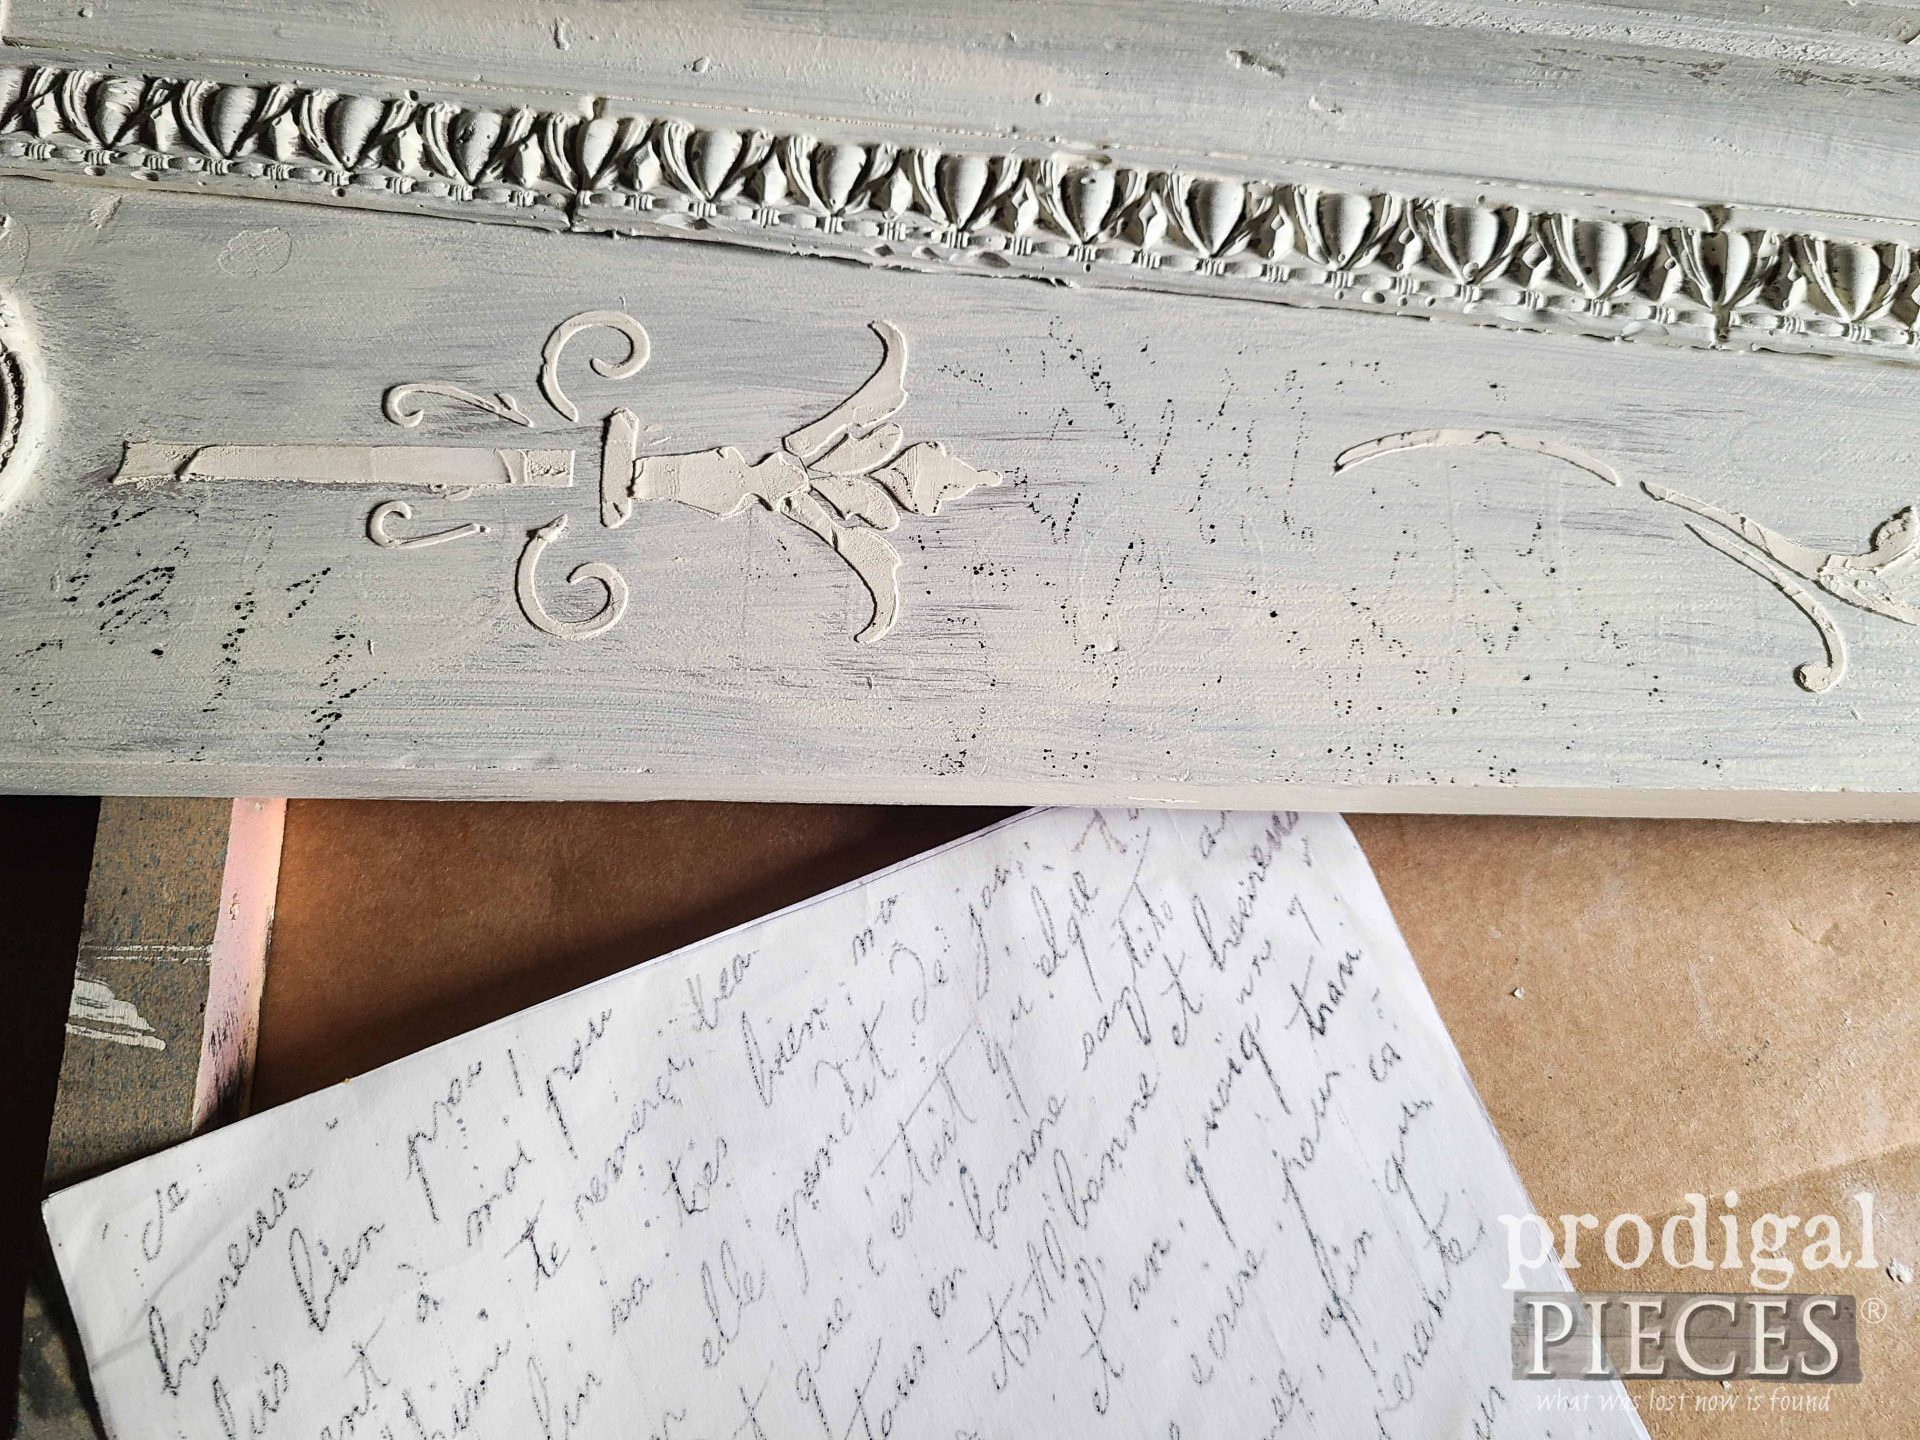 DIY Wax Paper French Script Transfer Tutorial by Larissa of Prodigal Pieces | prodigalpieces.com